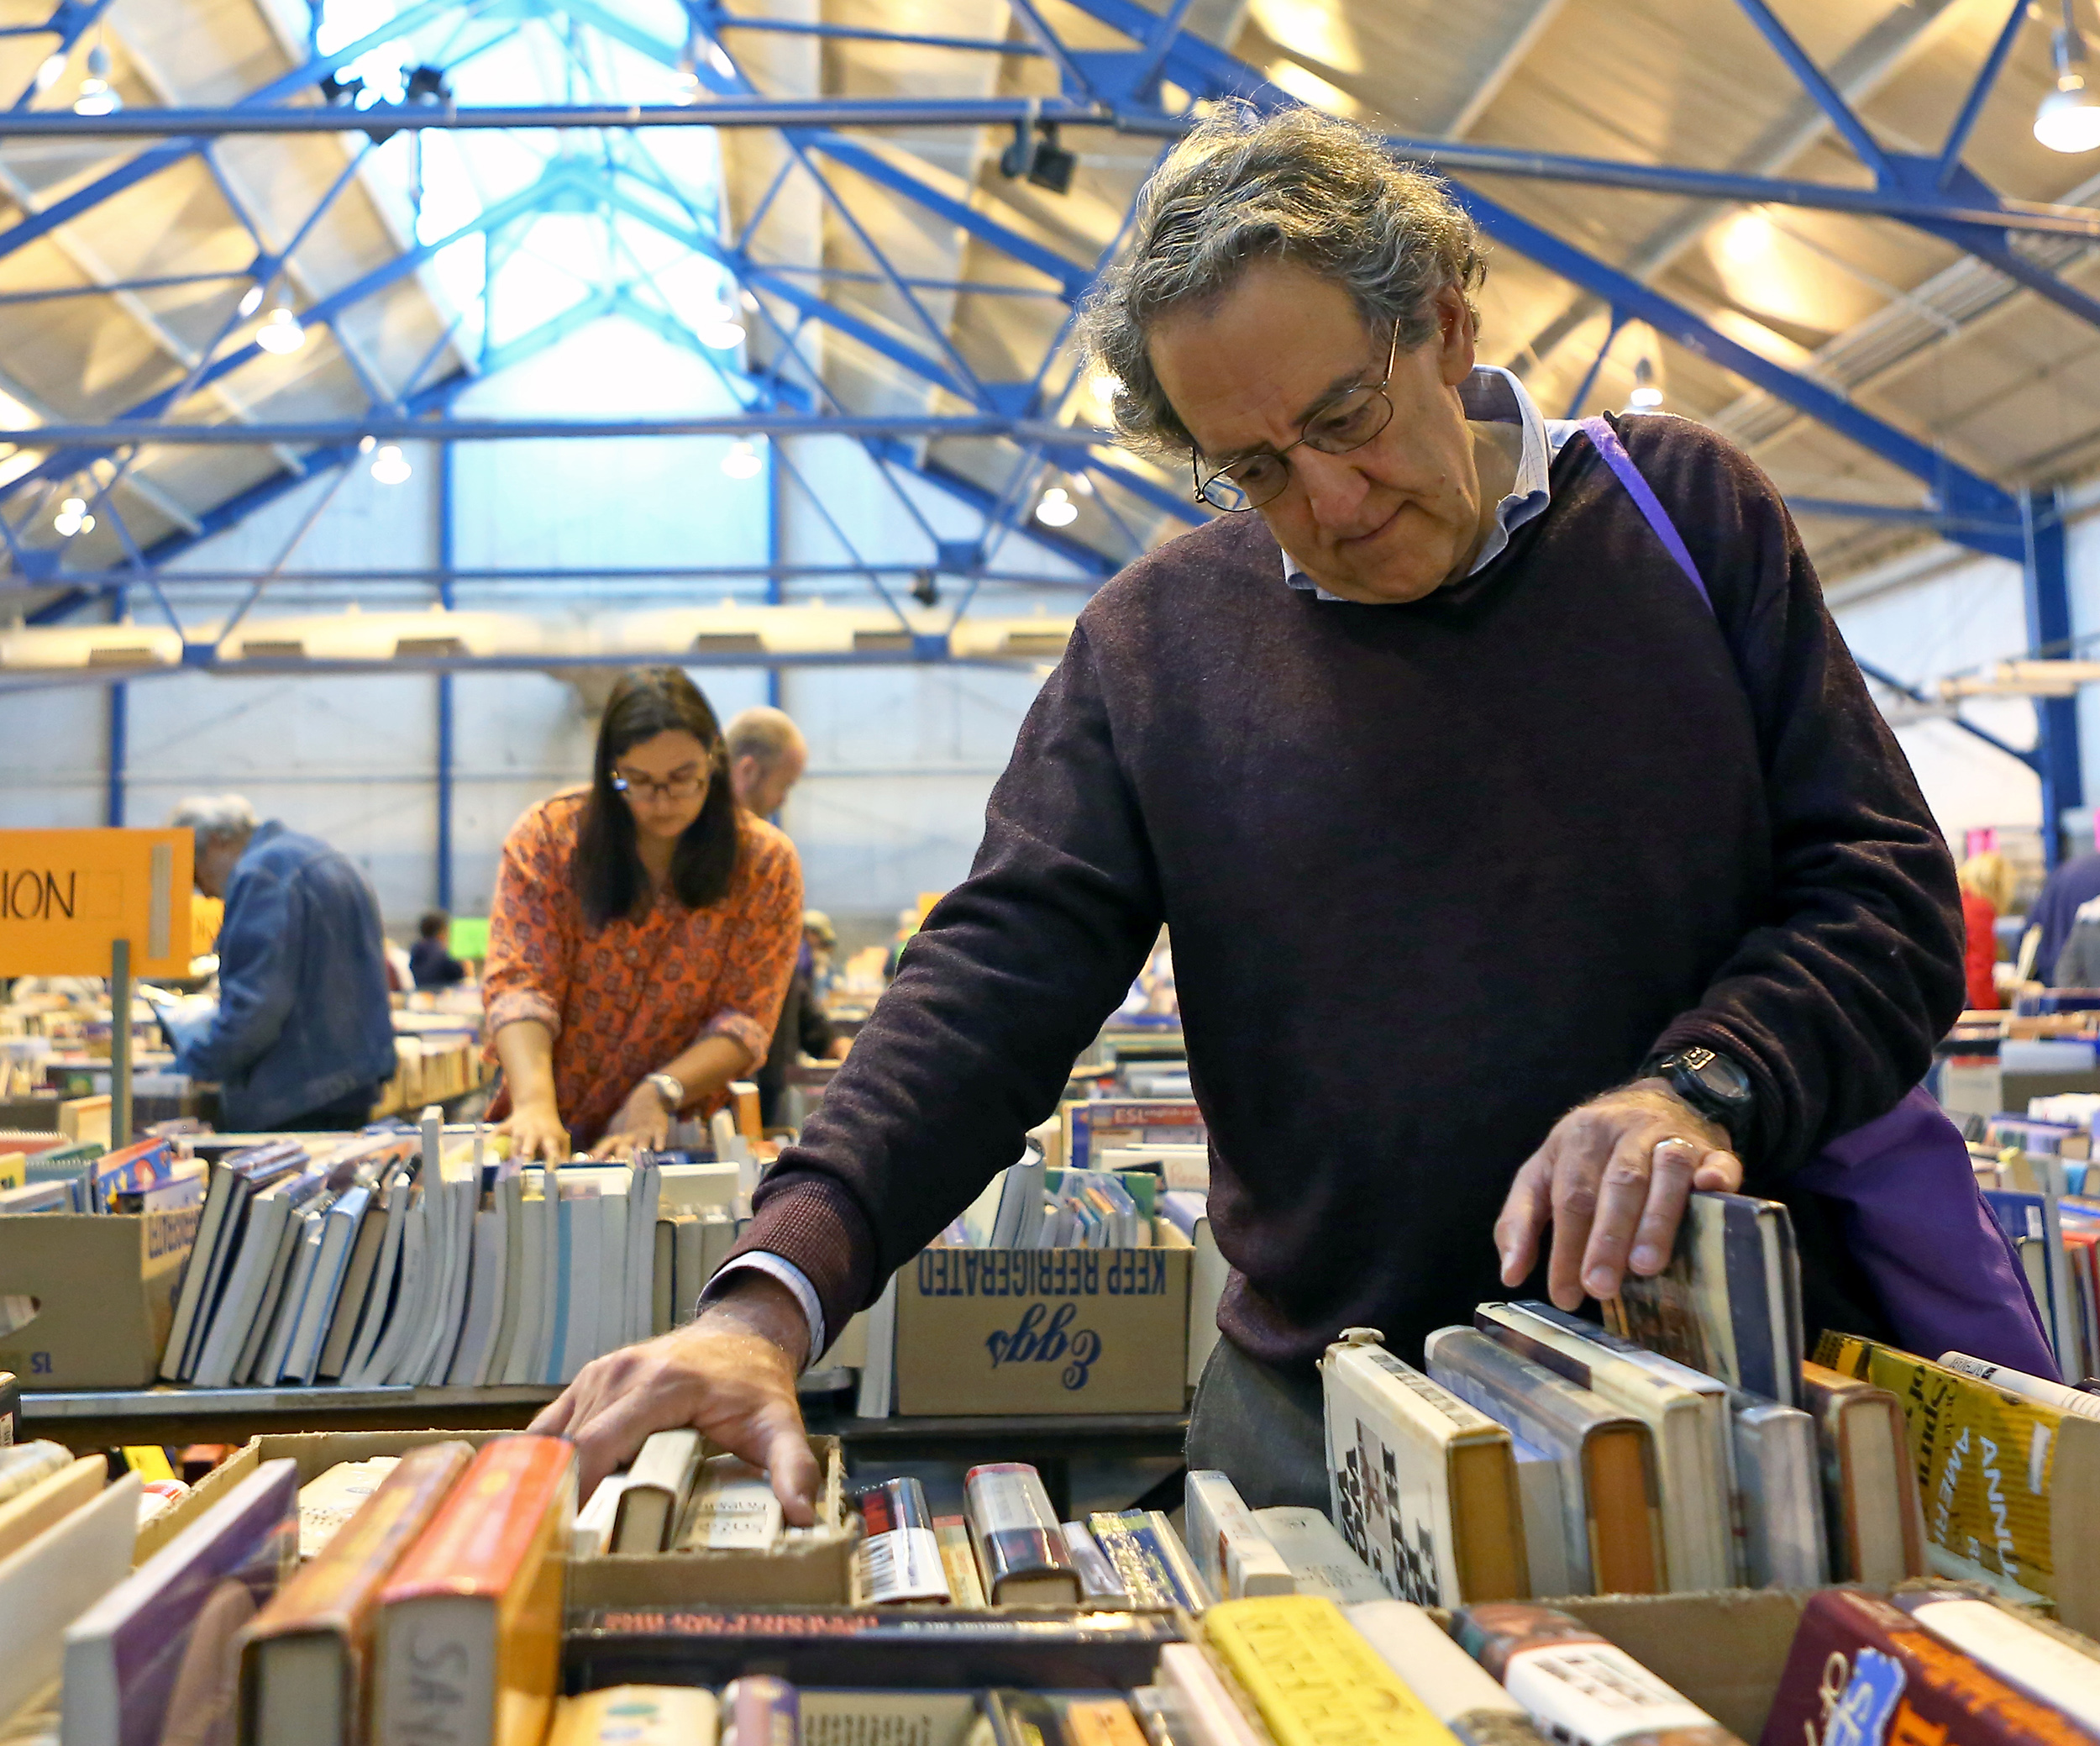 Barry Ruback of State College browses through the history section of the annual AAUW used book sale held at the Snyder Agricultural Arena on Sunday, May 15, 2016.